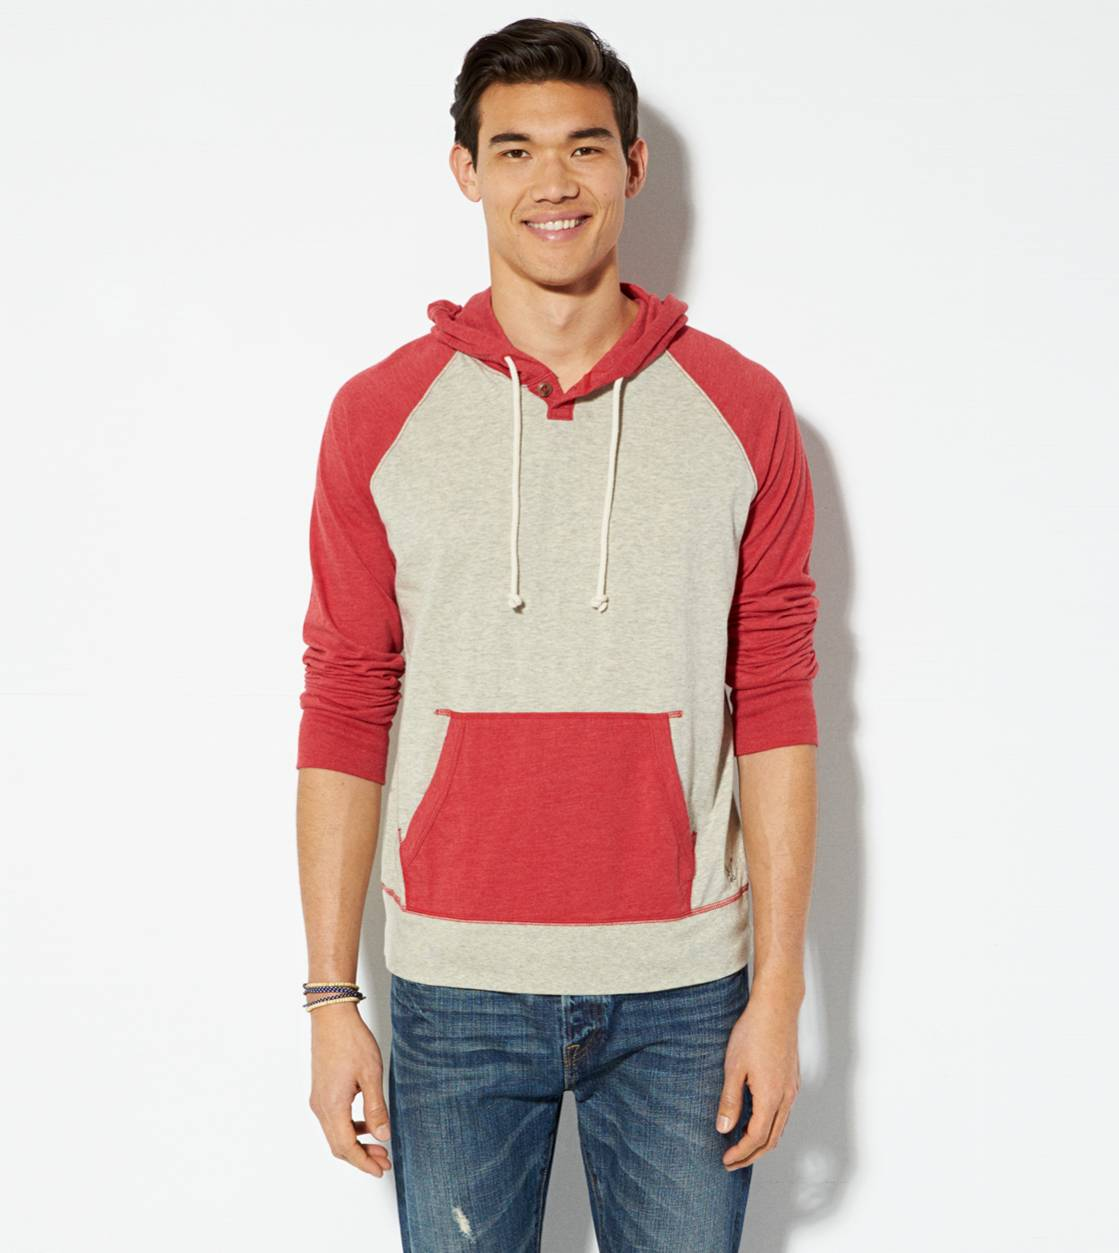 Oatmeal Heather AE Colorblocked Hoodie T-Shirt